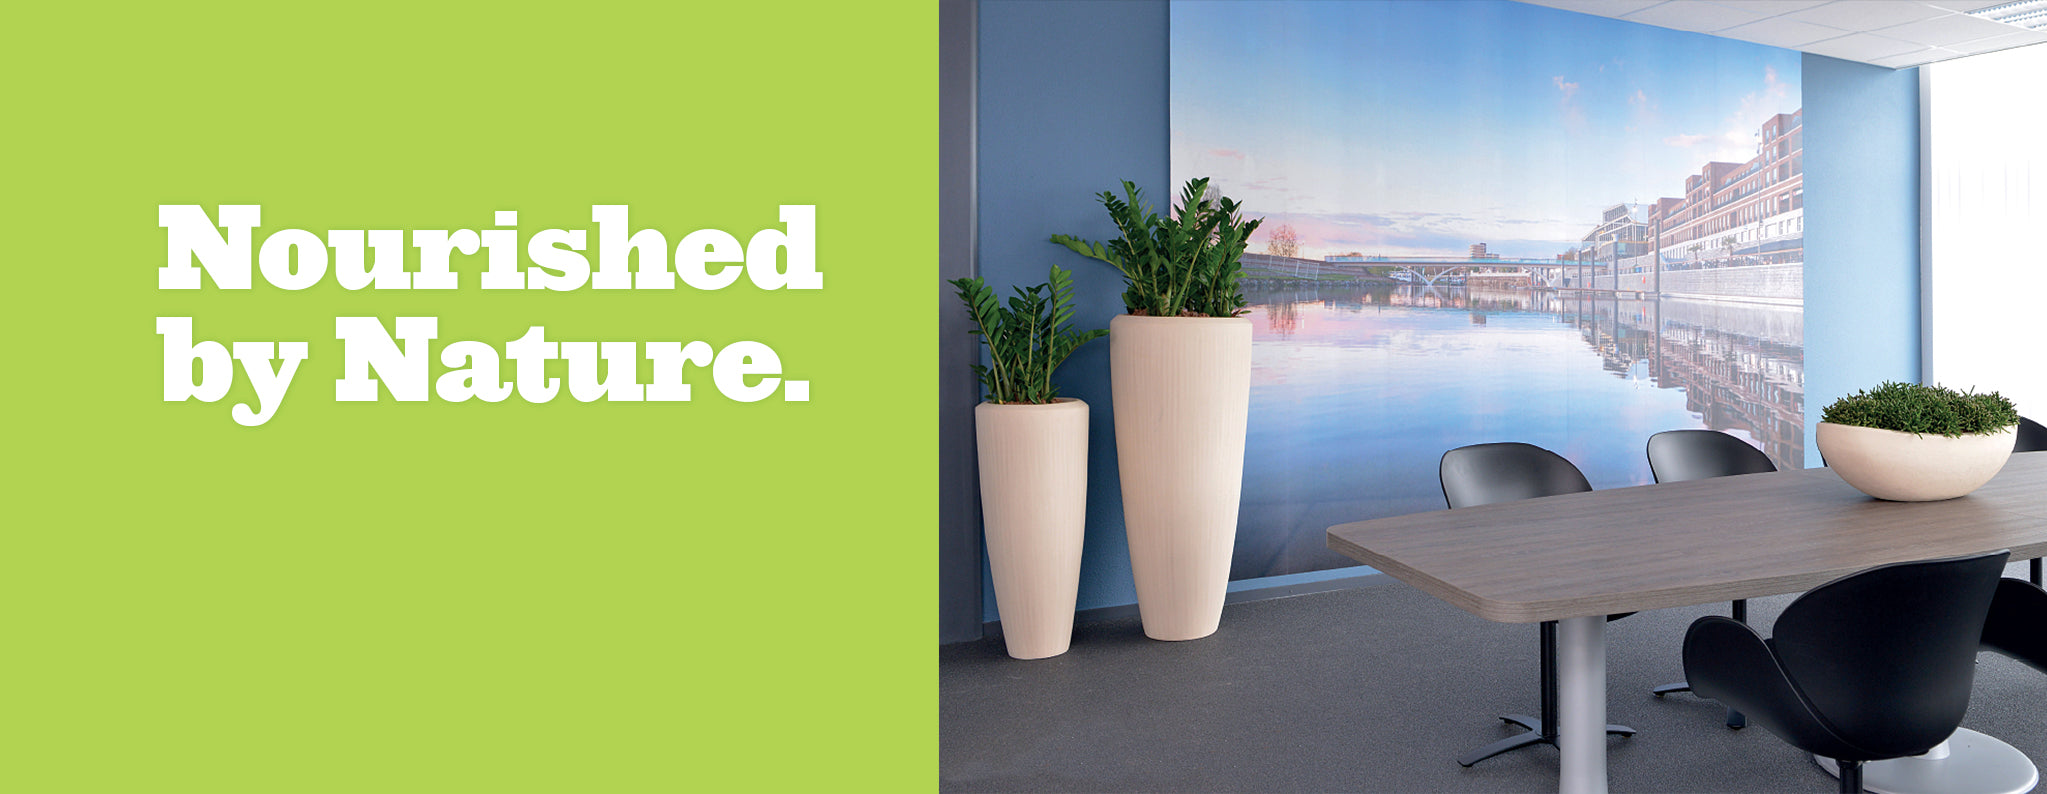 Nourished by Nature with Light Stone Planters